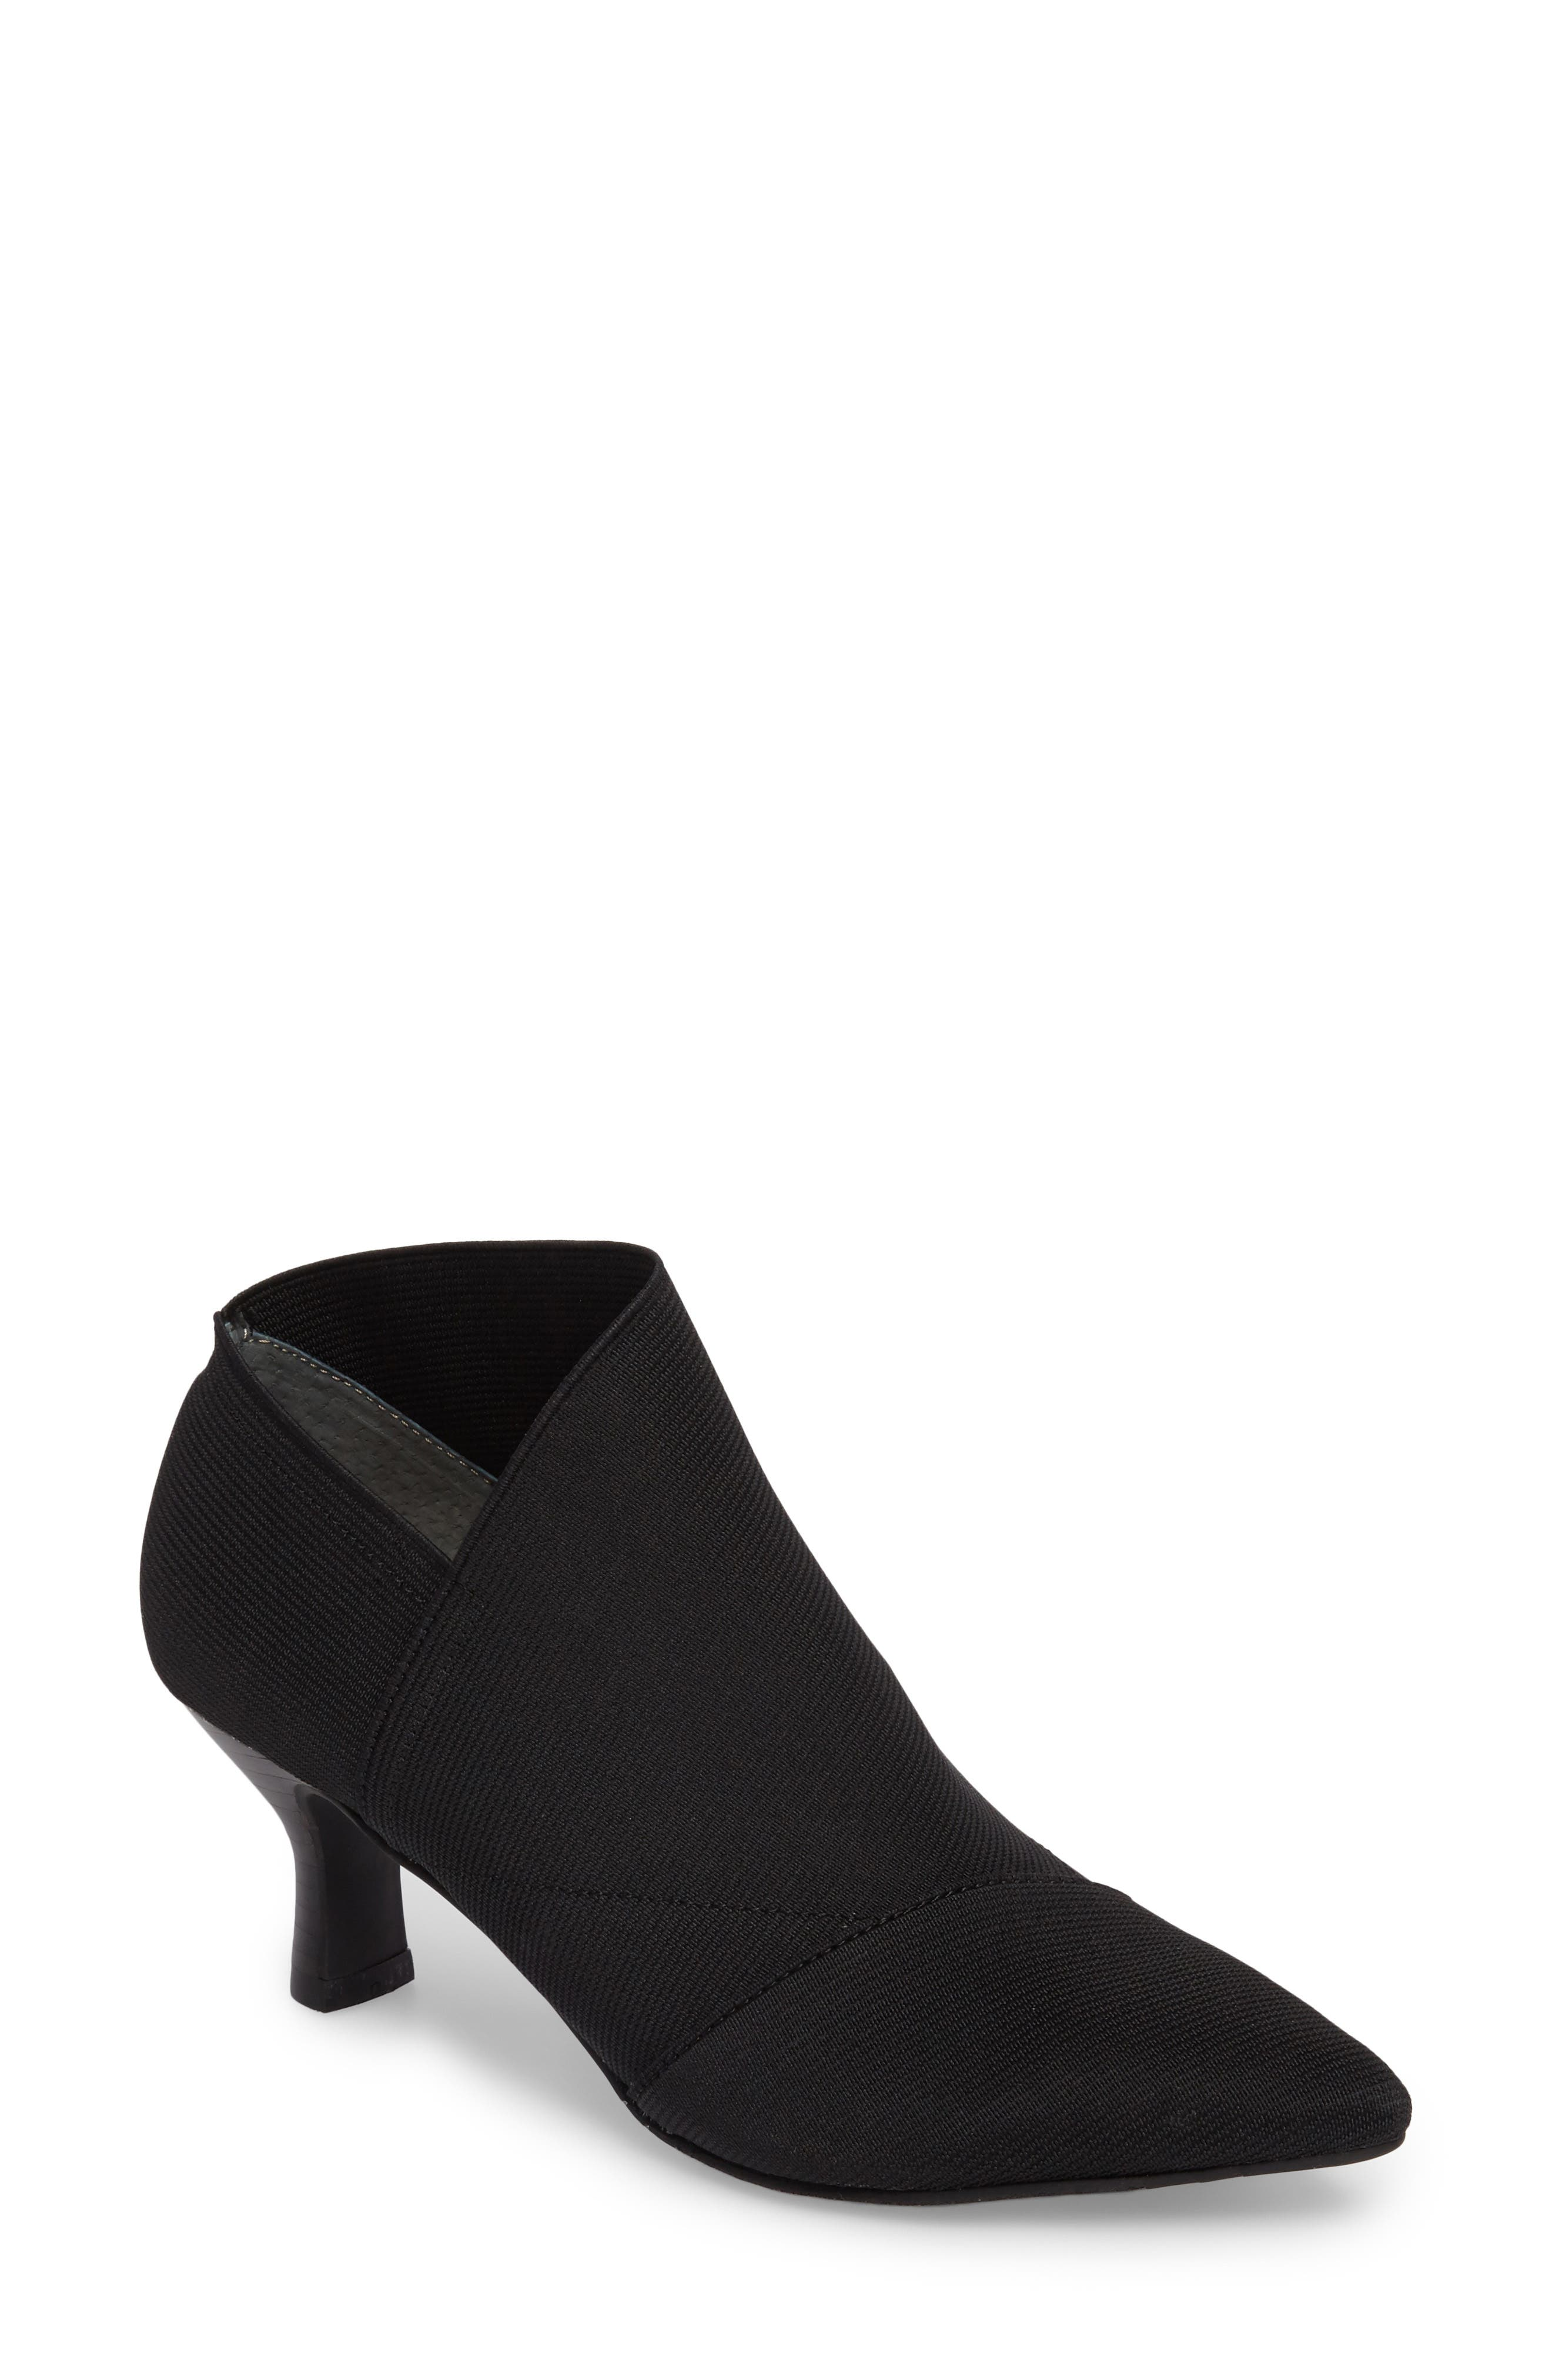 Hayes Pointy Toe Bootie in Black Fabric